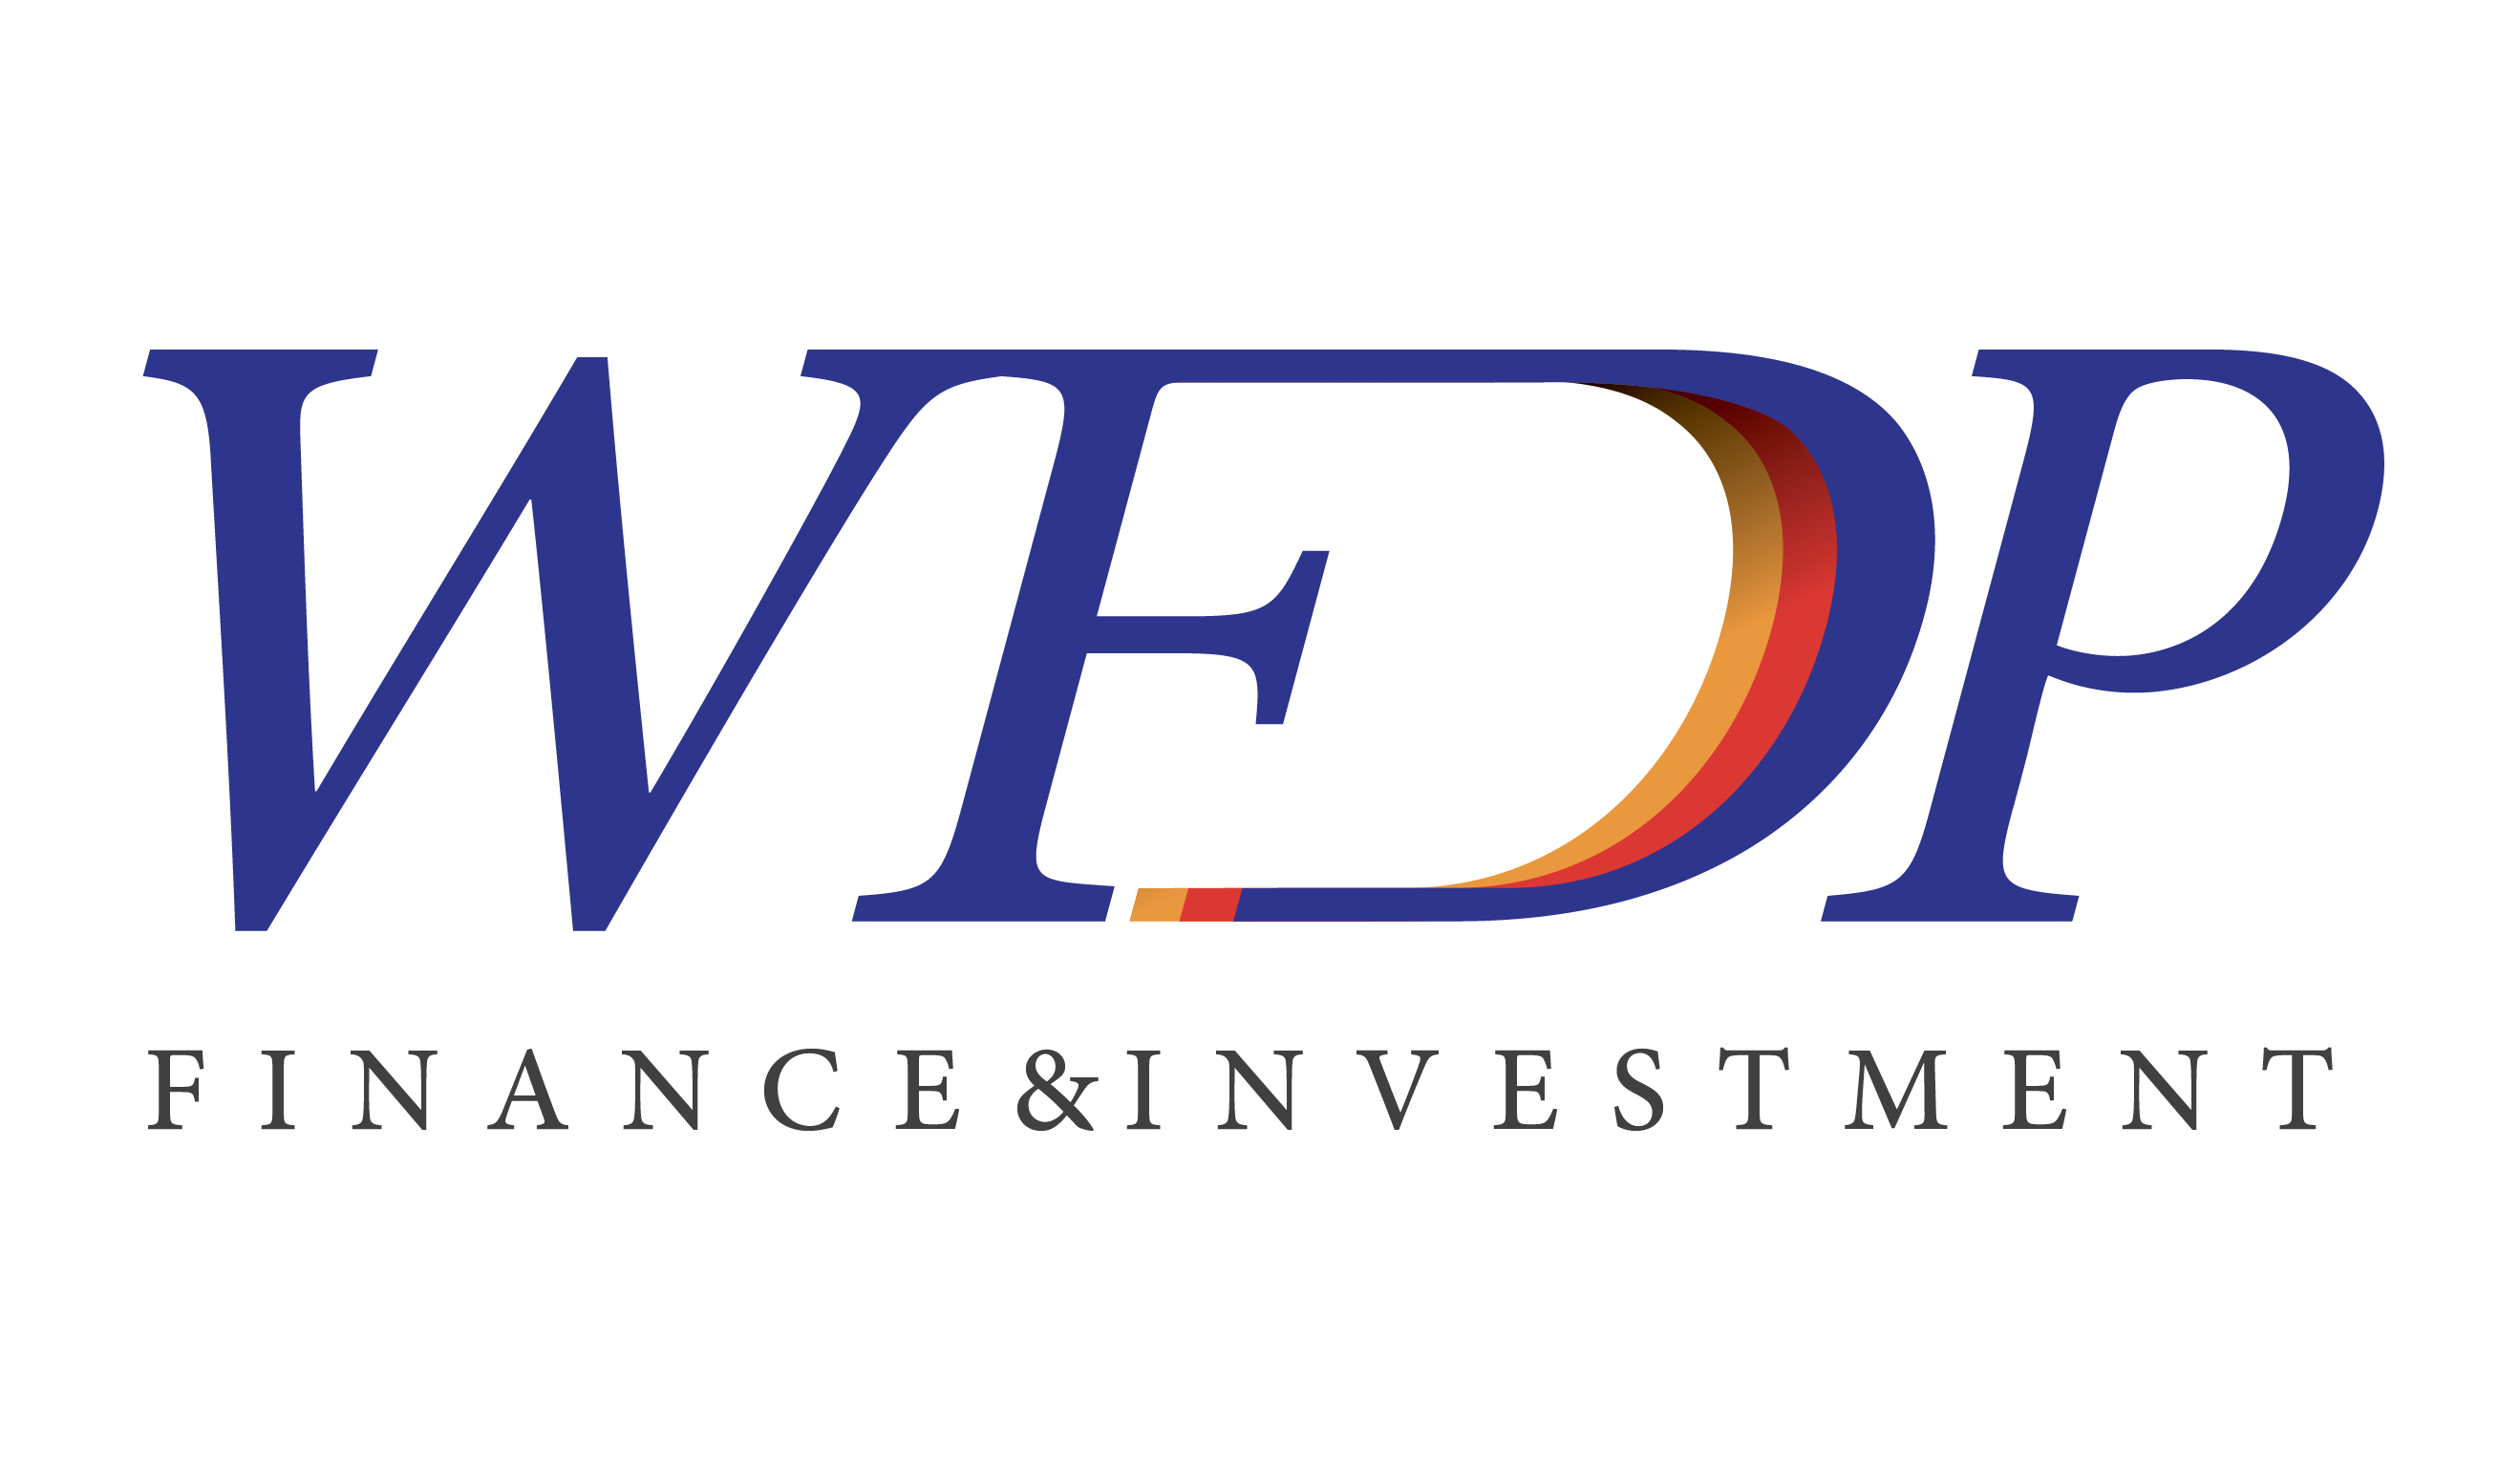 WFDP for Finance and Investment LLC